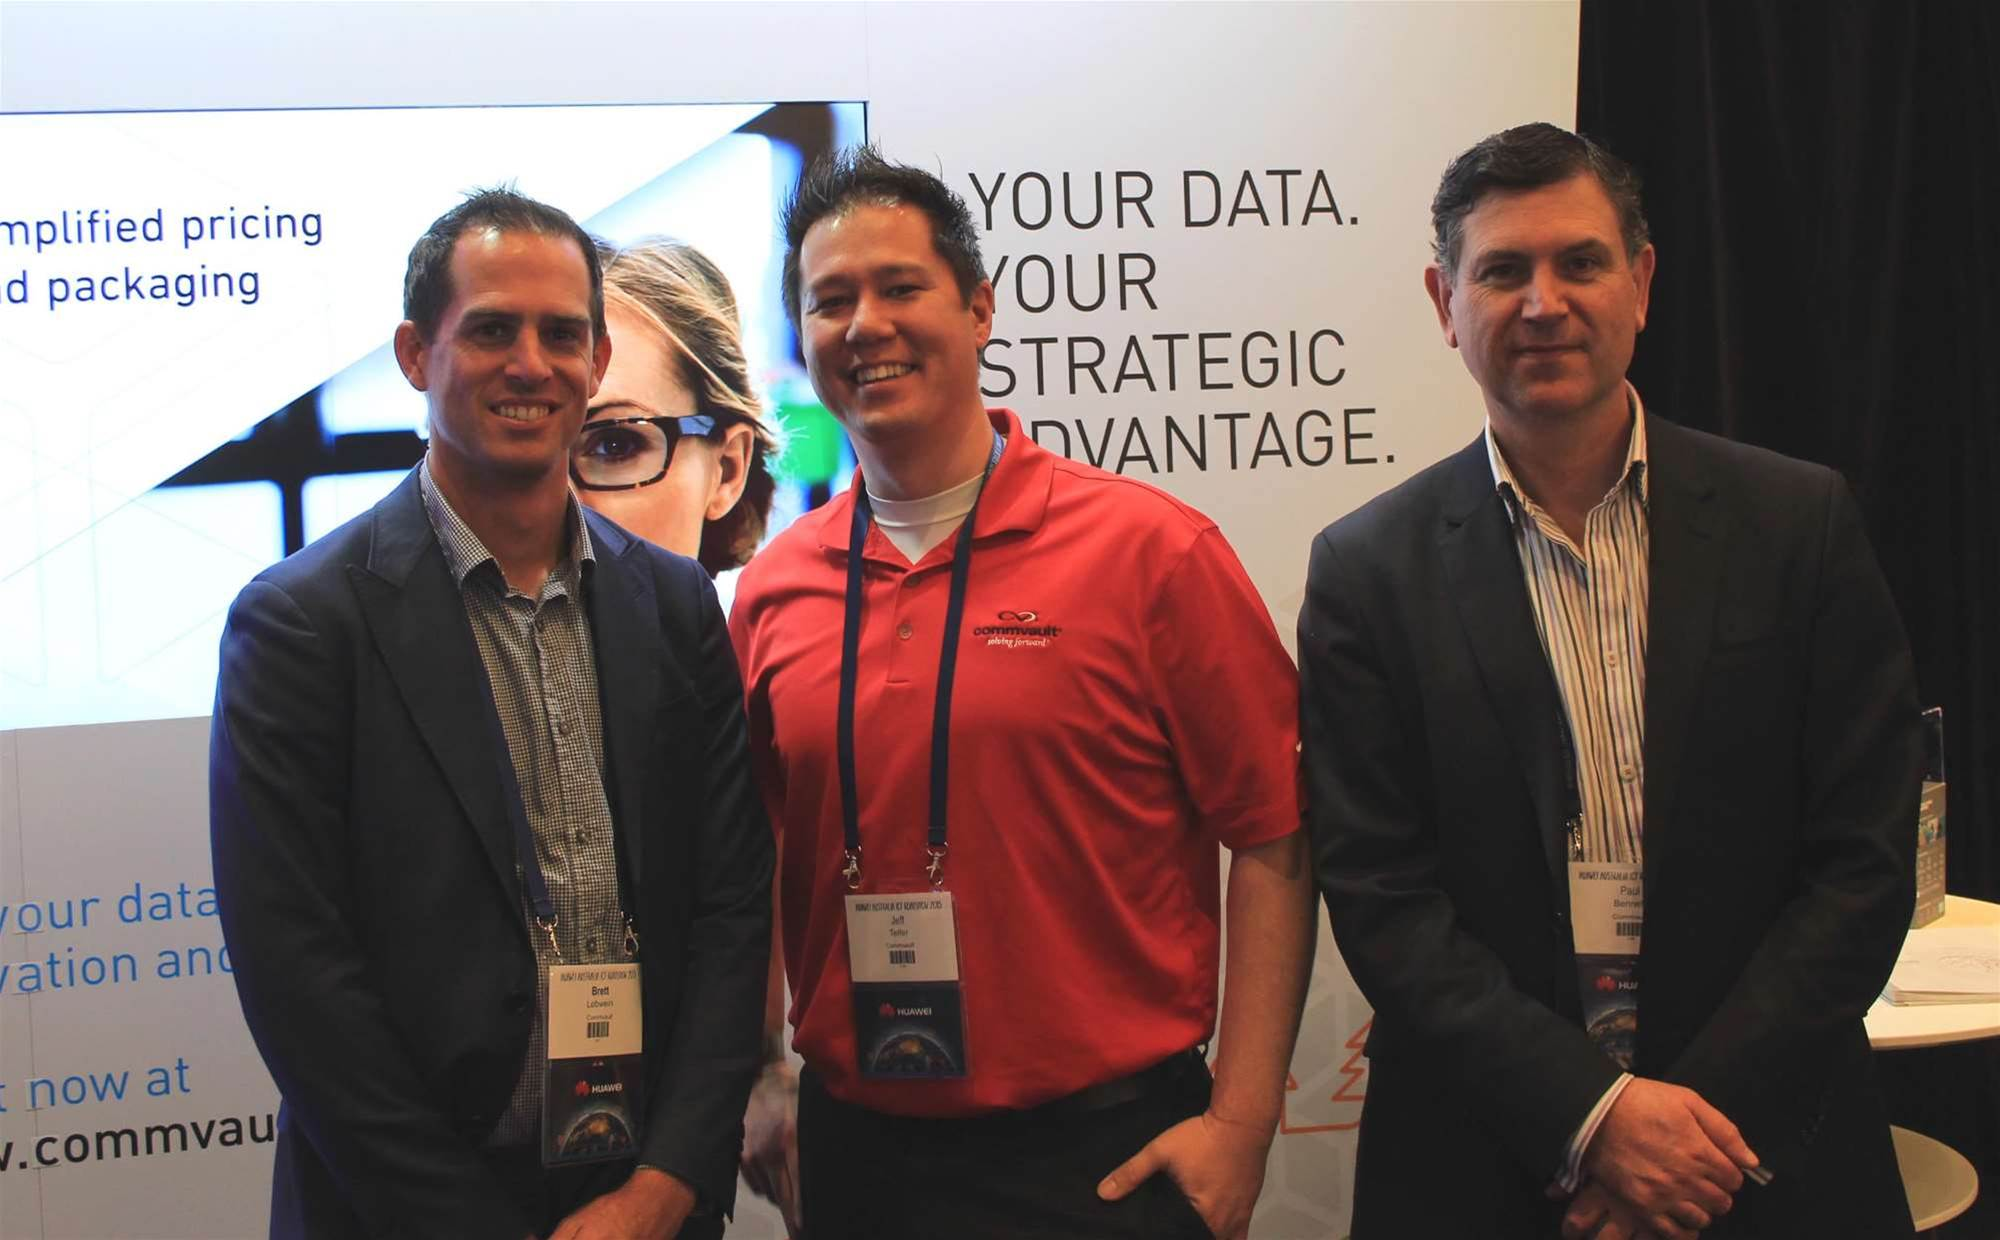 Around the stands at Huawei ICT Roadshow 2015